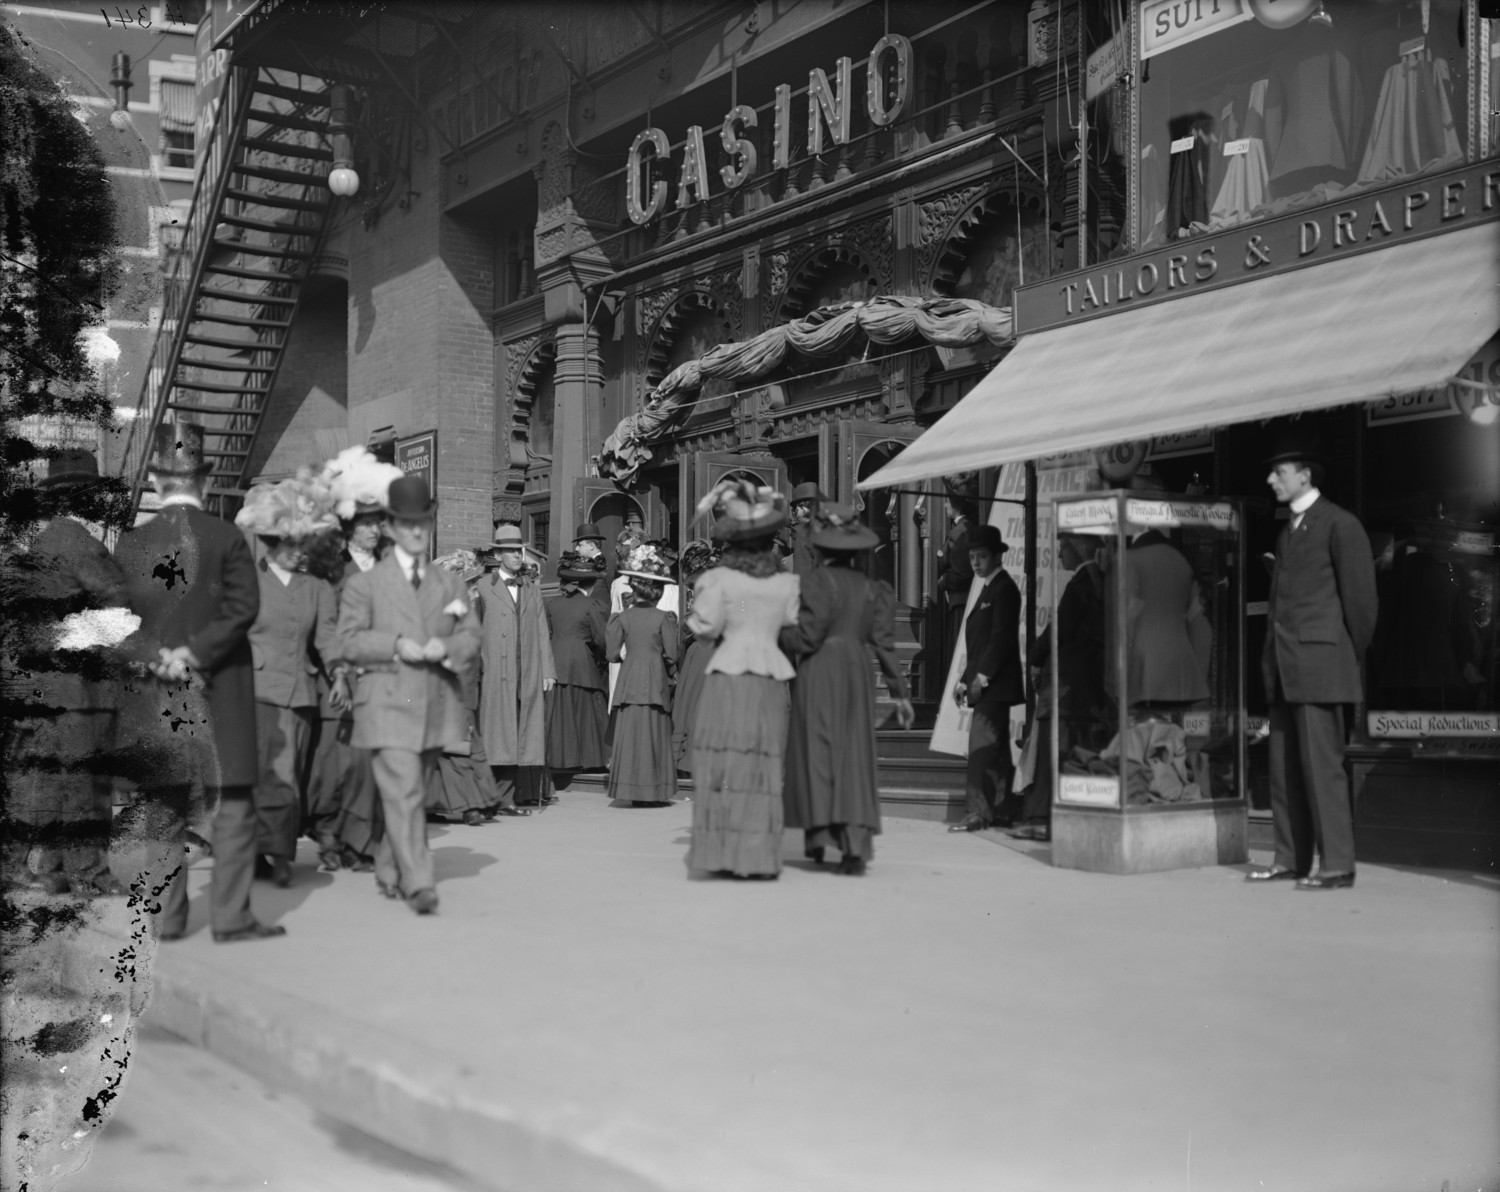 A Busy New York City Street Scene At The Casino Theatre – 1907